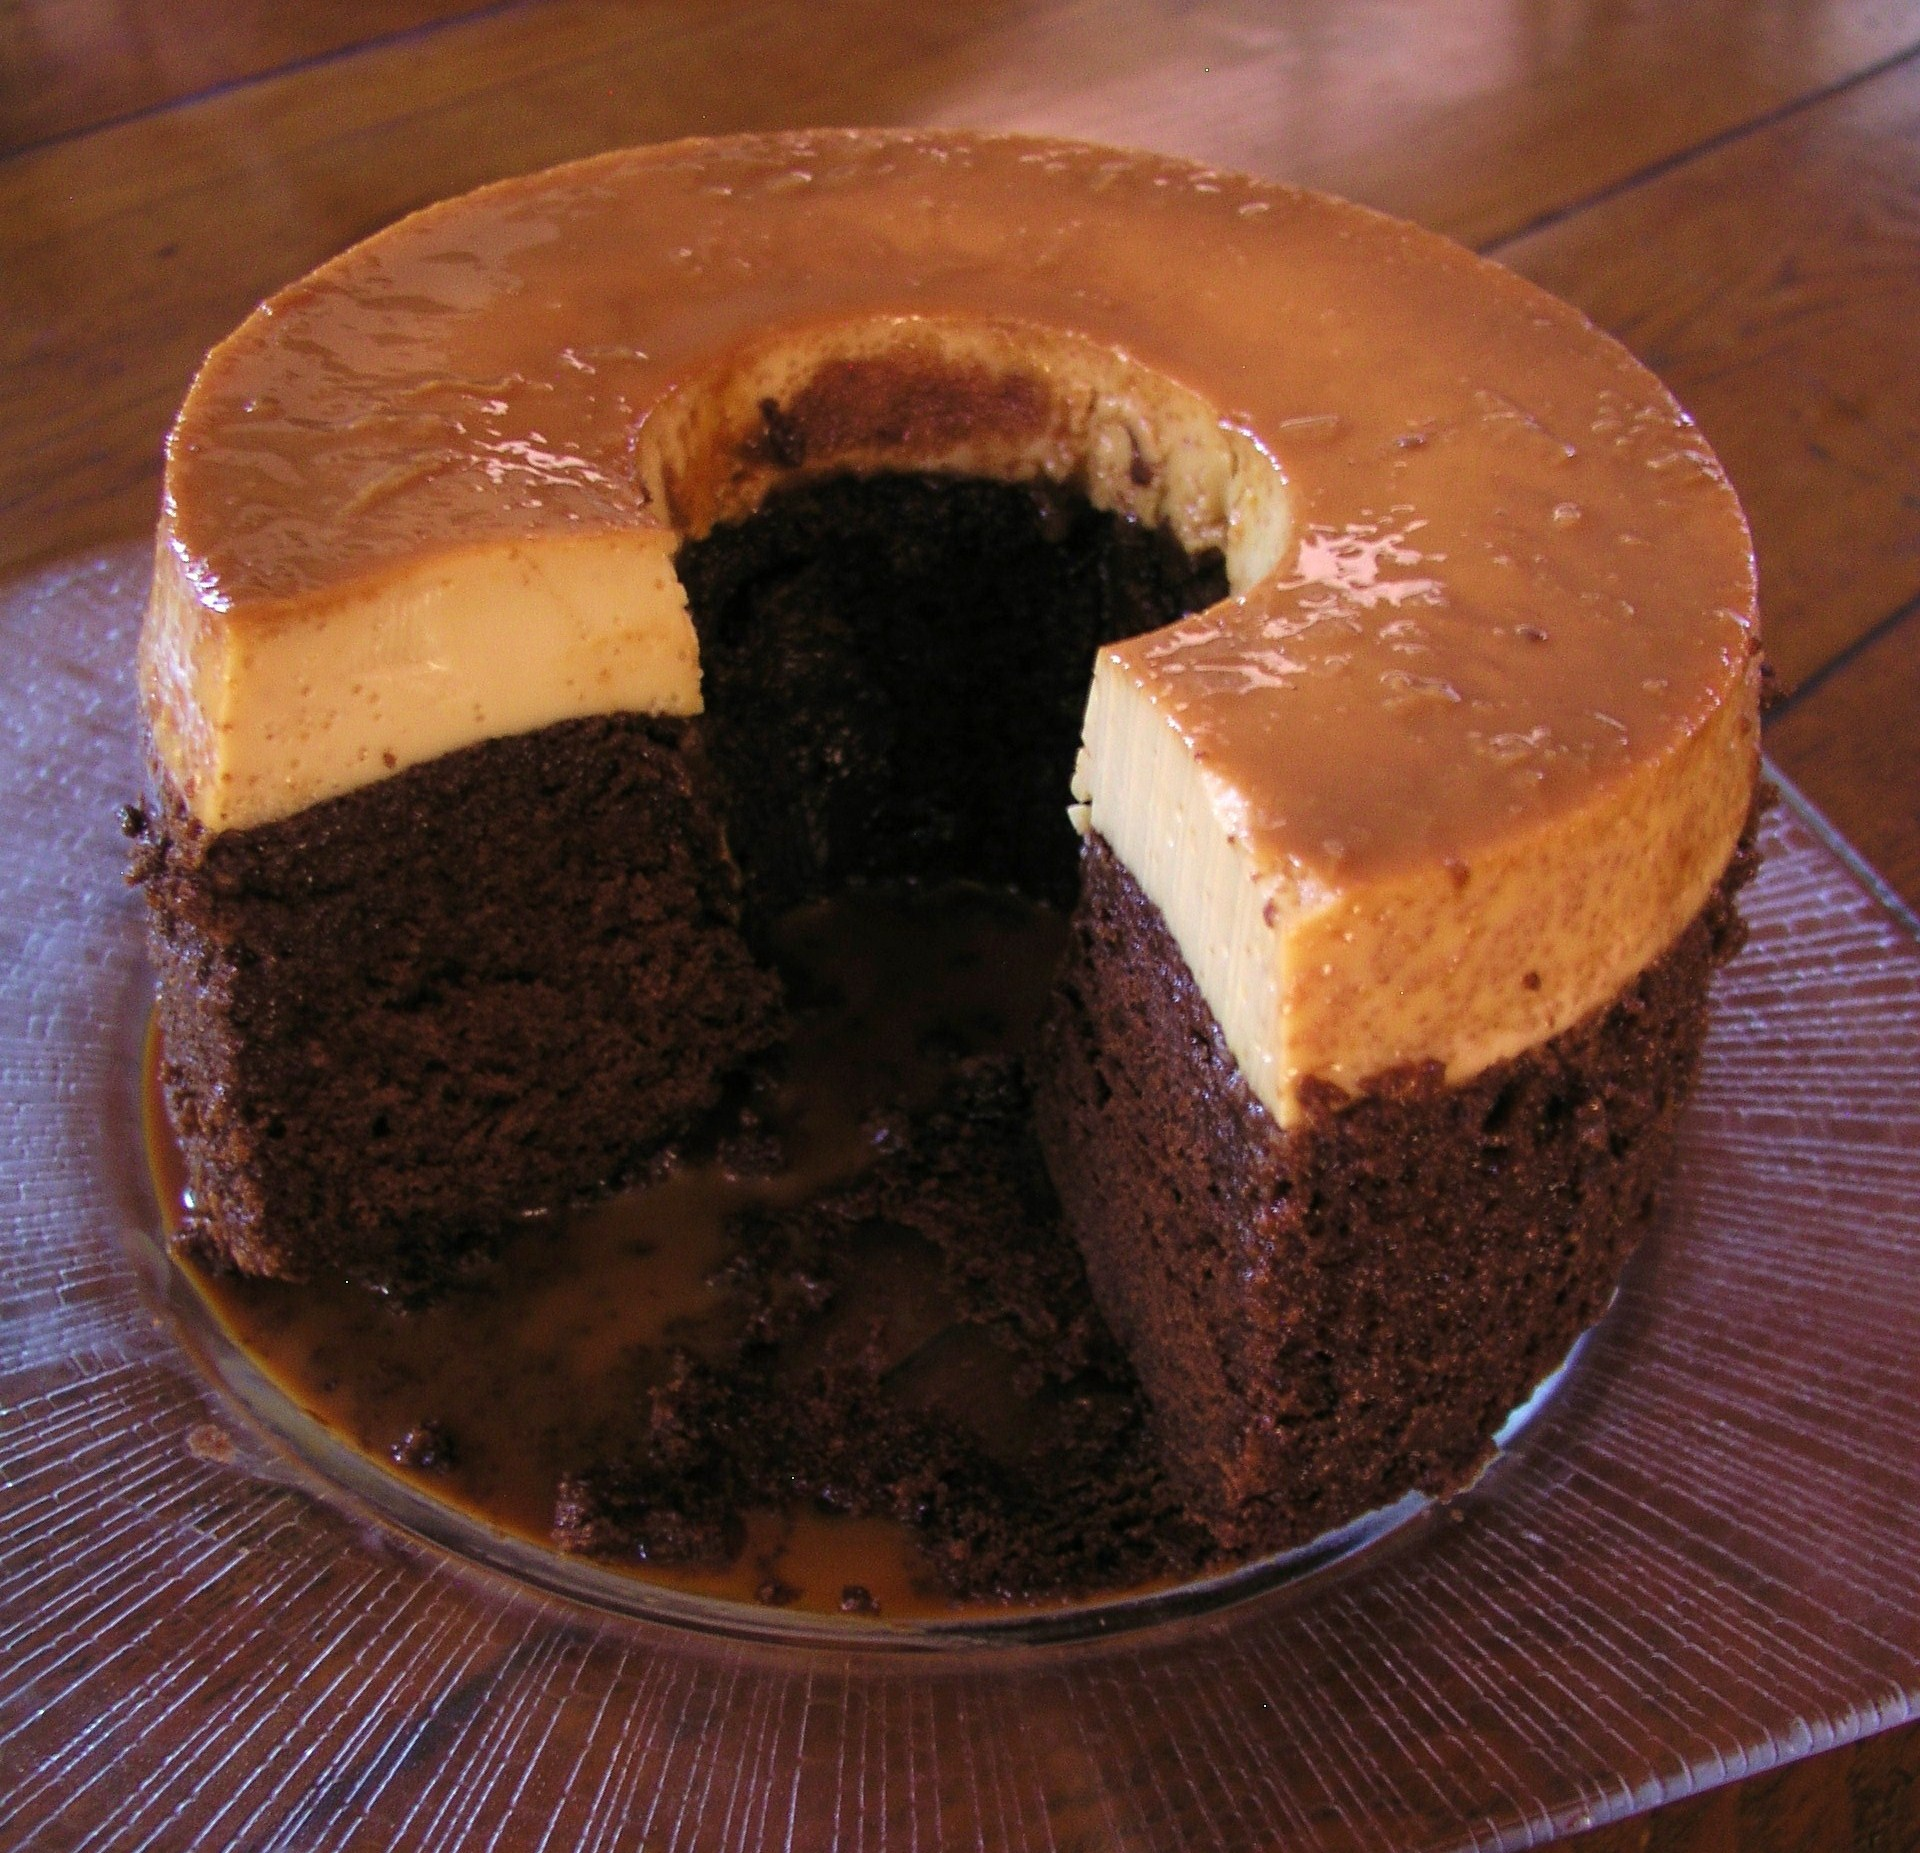 Chocolate Cake Chocoflan